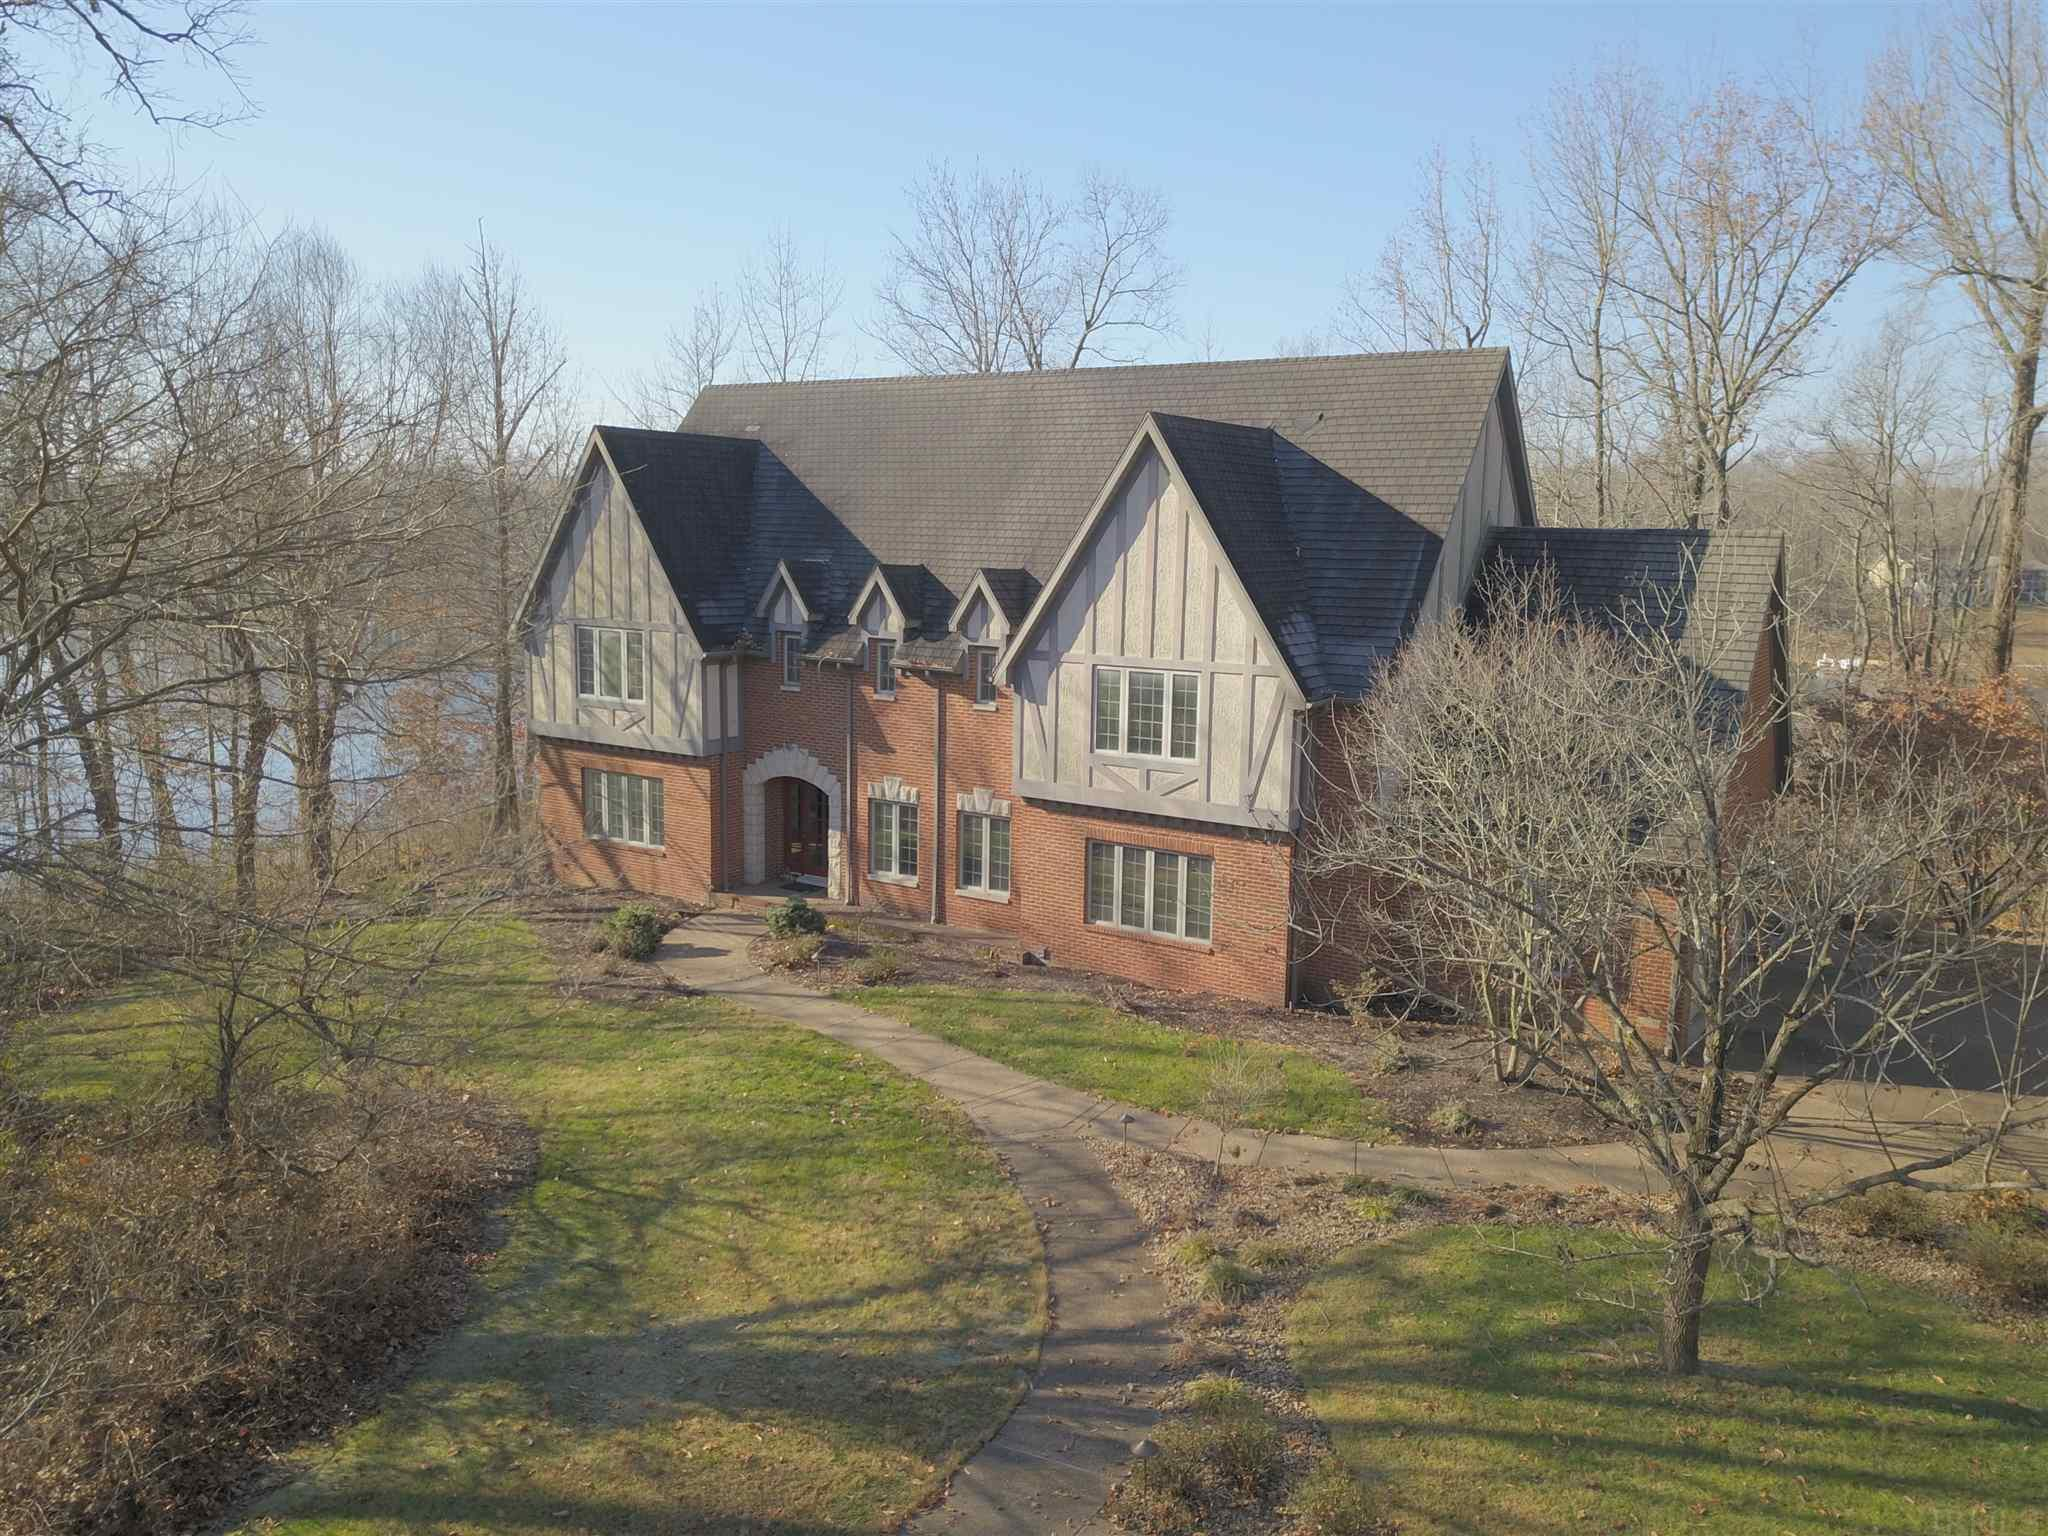 Rare find!  Wonderful Northside Estate on beautiful Kahre Lake.  This elegant Tudor home is in a Park-like setting on nearly 5 Wooded, Lakefront acres. Stunning views of 28 acre Kahre Lake from almost every room.  This spacious 6,126  square foot home with 5 bedrooms, 3.5 baths has so much to offer including a full Walk-Out Basement, an attached 2.5 Car Garage and a detached 2.5 Car Garage that includes a walk-up area for additional storage. The grand 2 story entry opens into a Formal Dining Room and a Formal Living Room. The main level Family Room boasts a Fireplace, built-in cabinetry and an abundance of windows.  The gourmet Eat-in Kitchen features Amish Cabinets, double ovens, warming drawer, wine refrigerator, 2 pantries and more.  It opens out to both a Screened Porch and a Patio with stunning lake views.  The Master Bedroom offers 2 large Walk-in Closets, a whirlpool tub, and a separate shower.  New Carpet throughout, 9 foot ceilings, generous Storage, 3 Fireplaces and so many impressive amenities.  The full Walk-out Basement includes a large Family Room with a Bar and Fireplace, A Pool/Game room, Office/Storage room, Workout or Workshop room, Bedroom, a Full Bath and lots of Windows.  This home offers you a retreat from the outside world while still being close to shopping and schools.